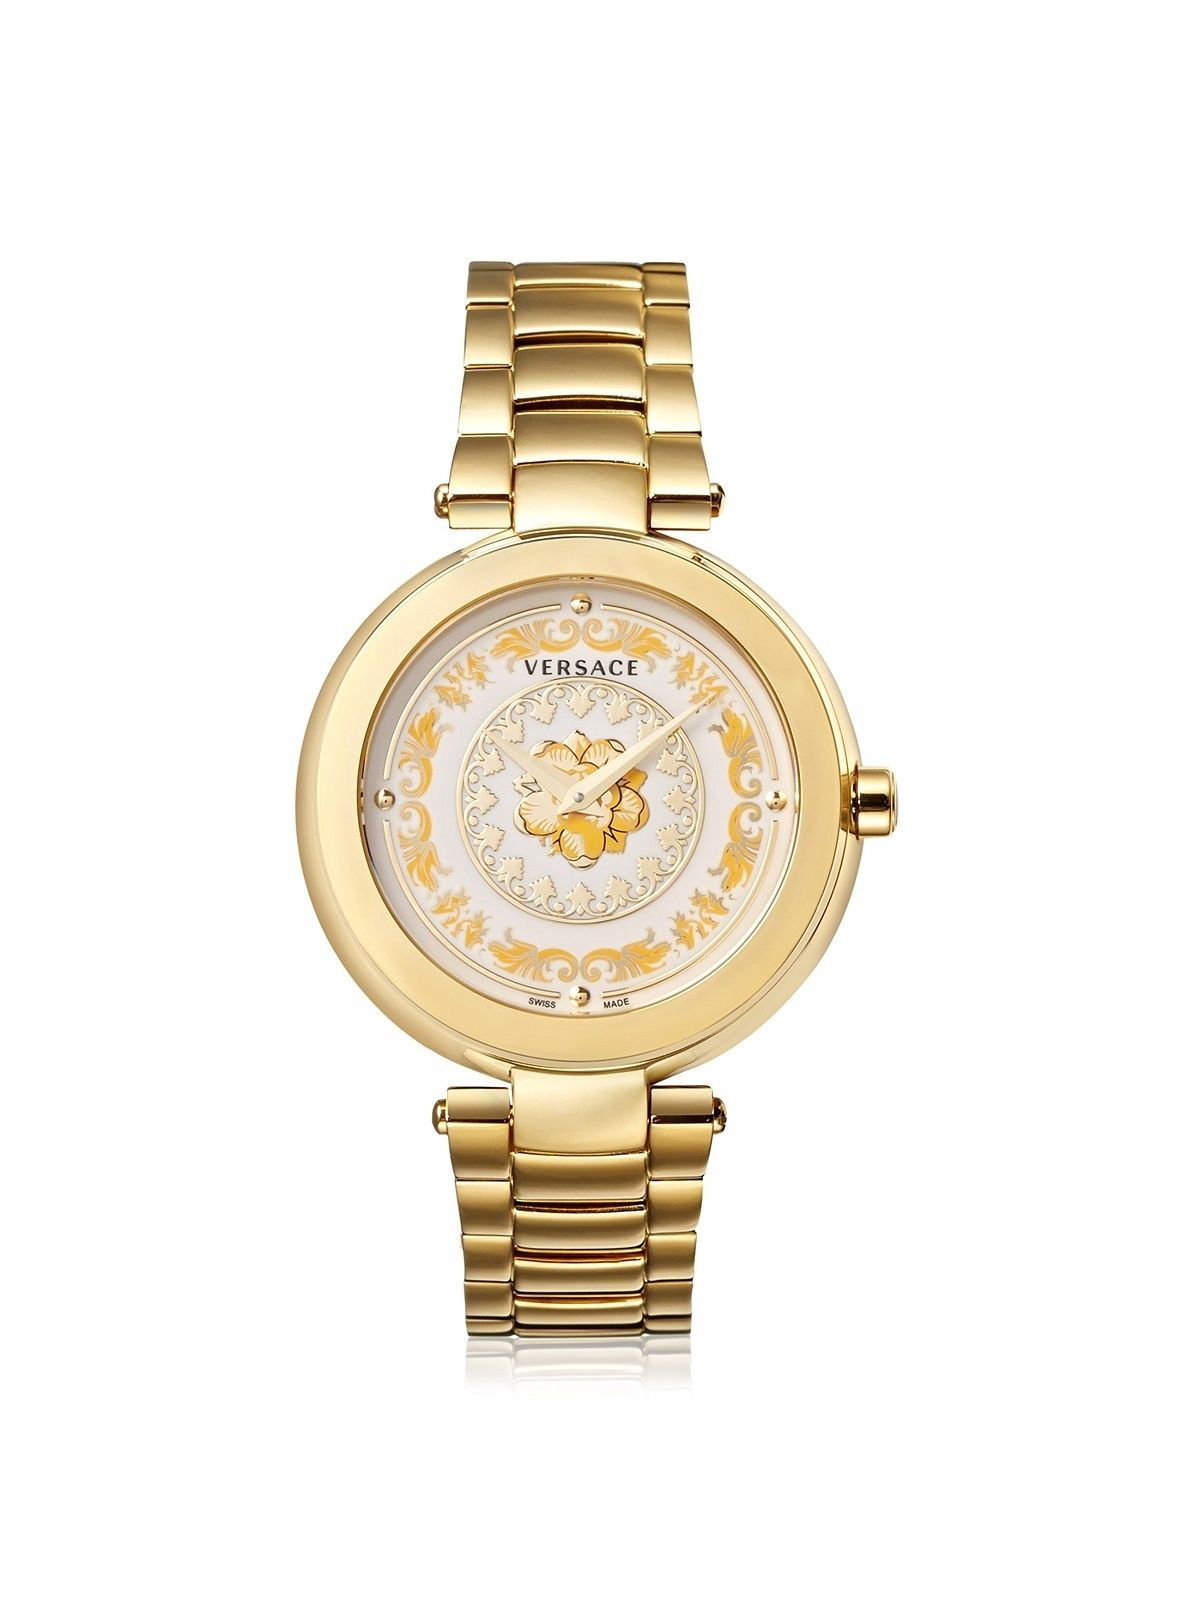 485ba2254fc Versace Women s Mystique Foulard Diamonds Steel Watch Versace Women s Mystique  Foulard Diamonds Steel Watch ...